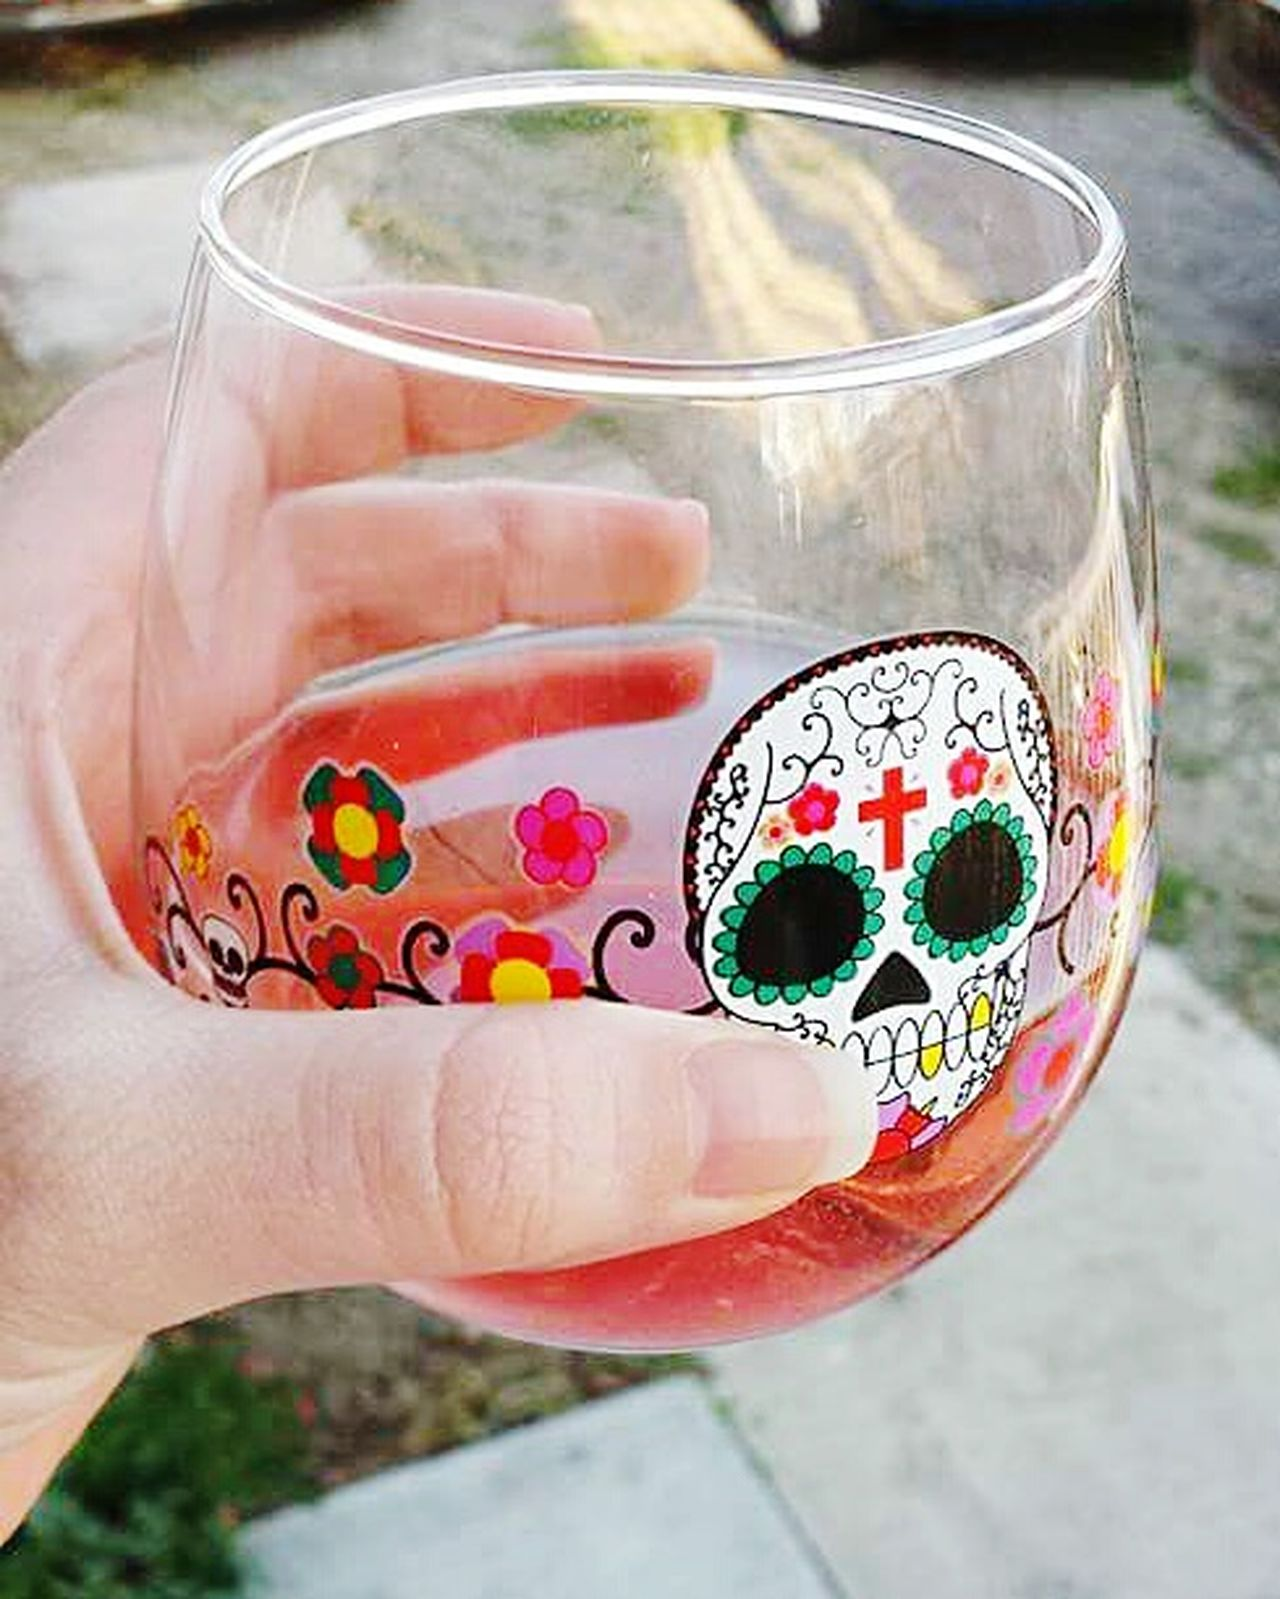 Cheers Cheers! Cheerstotheweekend Wineglass Wine Wine Time Winelovers  Sugarskull Sugarskulls Cheers To Summer Cheers🍺 Ready For The Weekend! Relax With A Drink Drinking Wine Thirsty Thursday Alcoholic Drink Alcohol Drinks Drink Up Wine Glass Wine In A Glass Relaxing My Glass Winelover Enjoying Life Refreshment